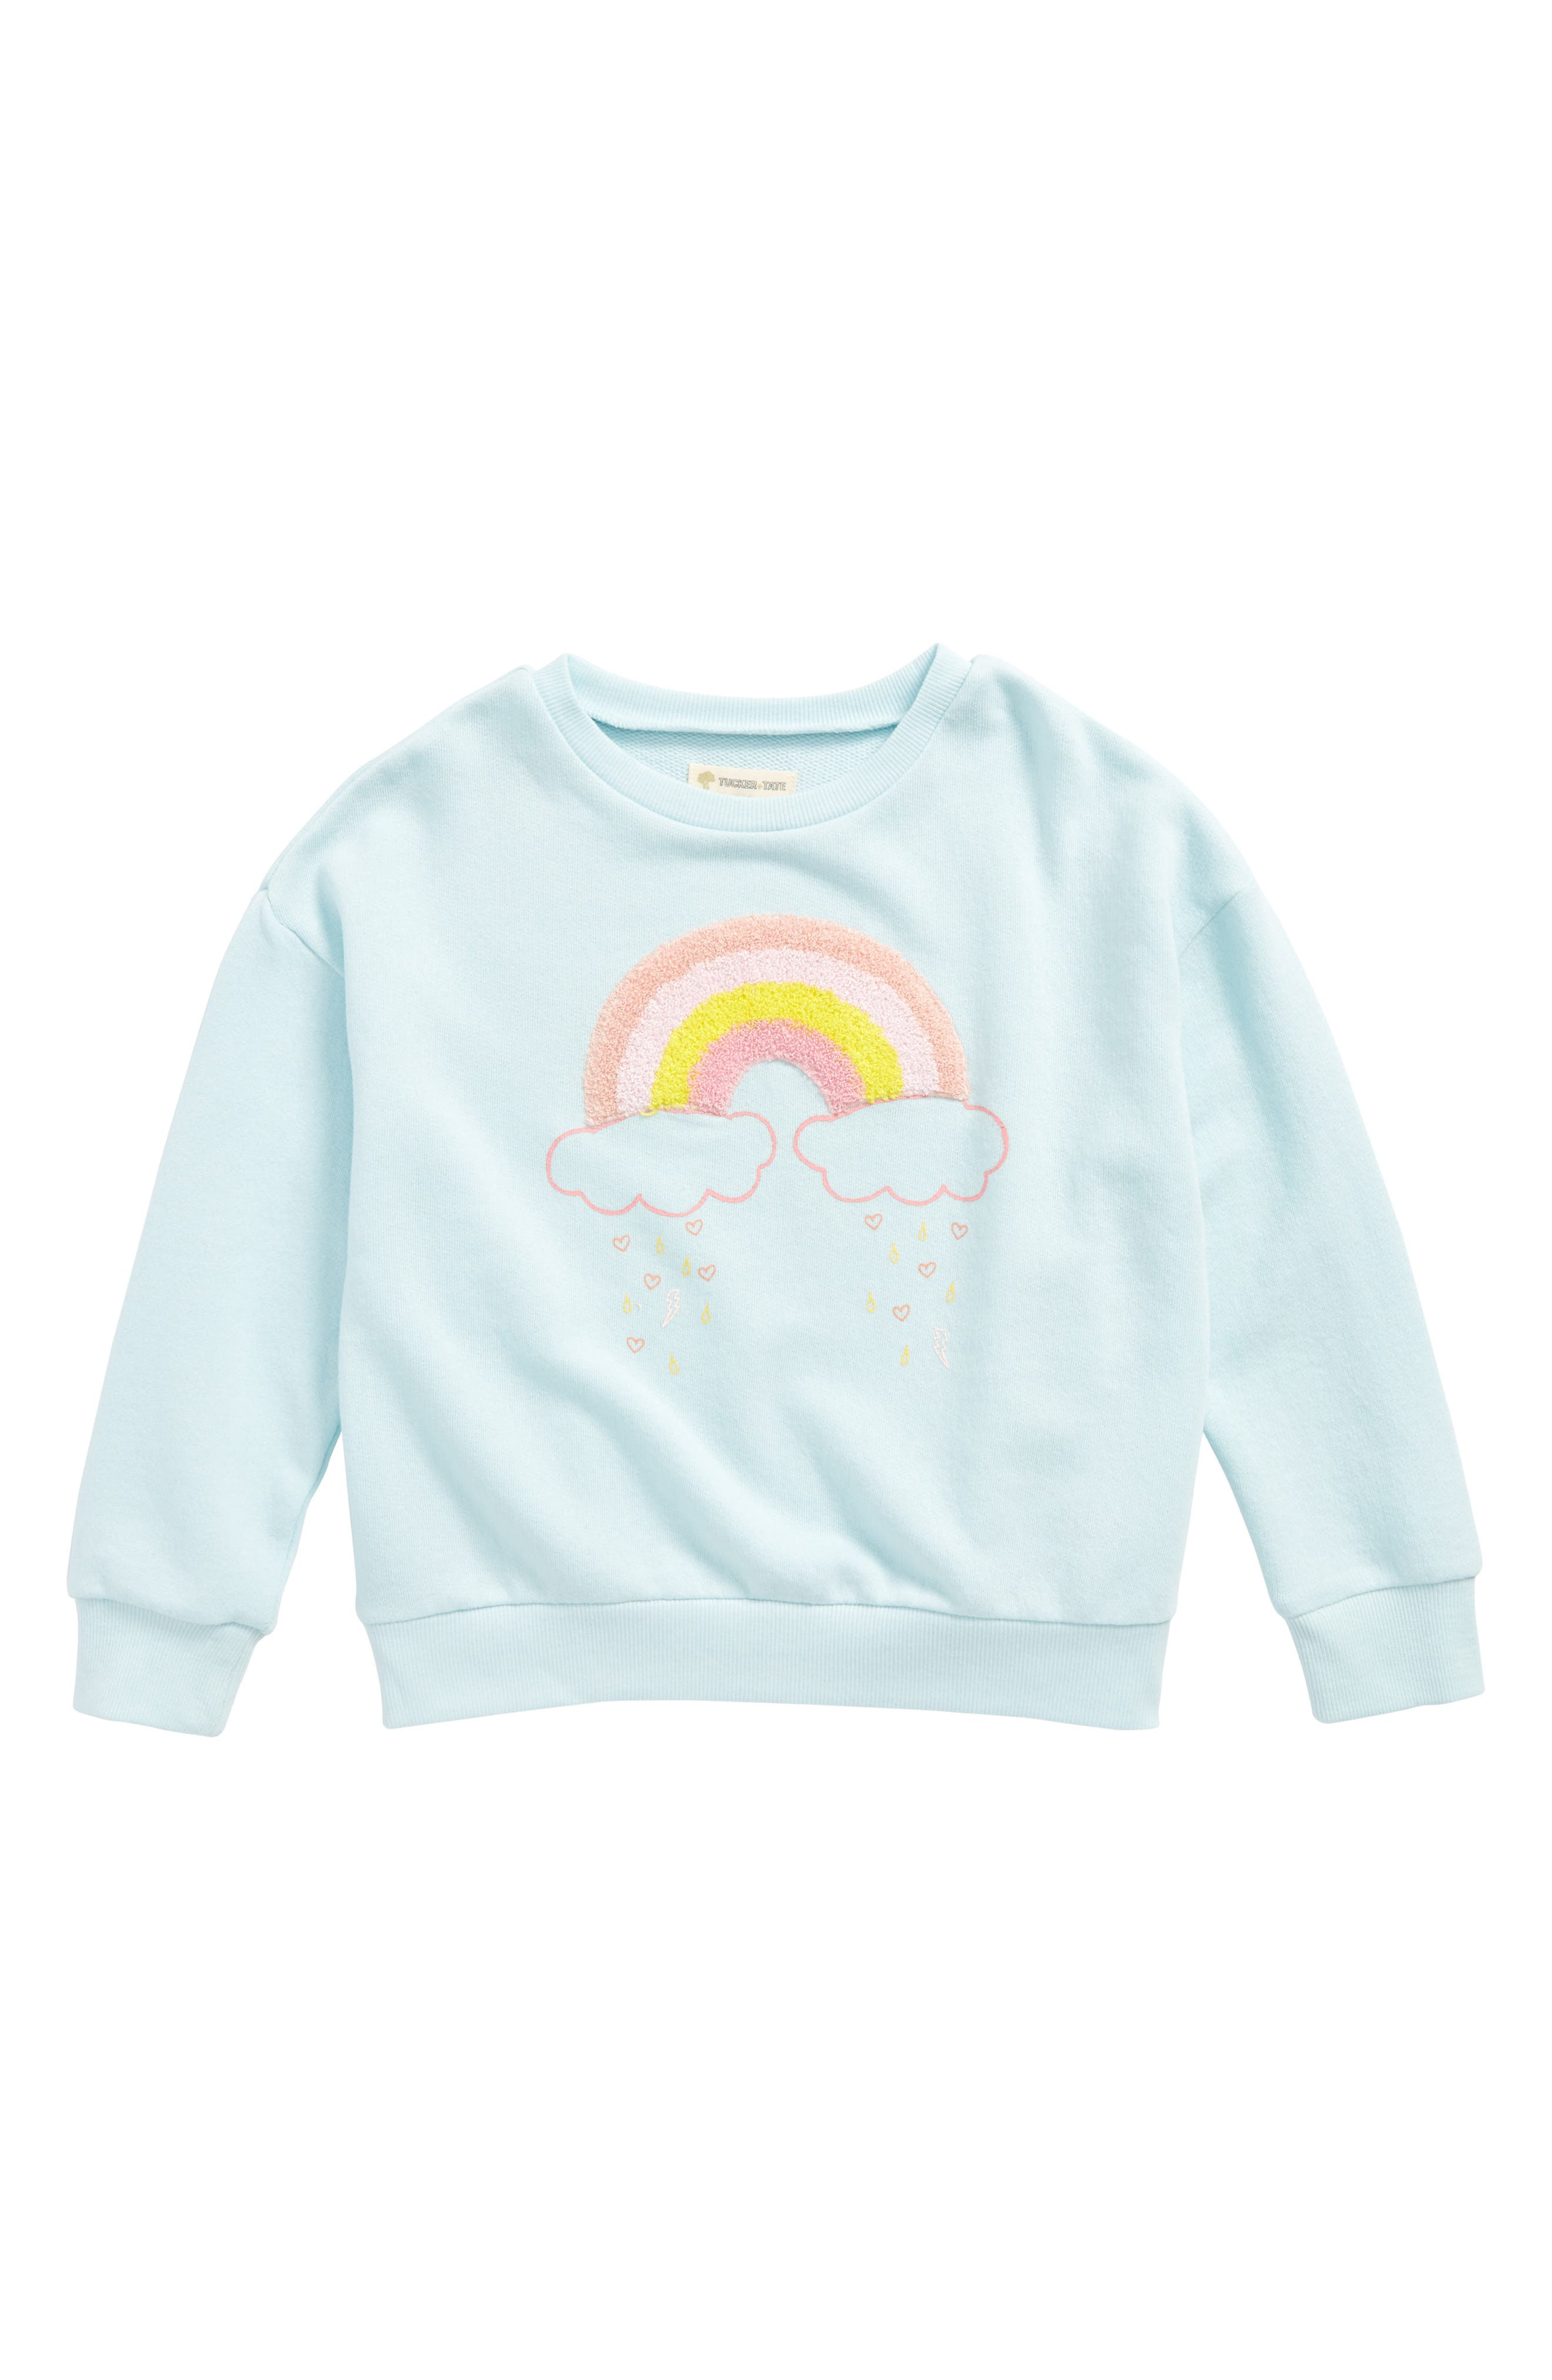 Tucker + Tate Rainbow Appliqué Sweatshirt (Toddler Girls, Little Girls & Big Girls)